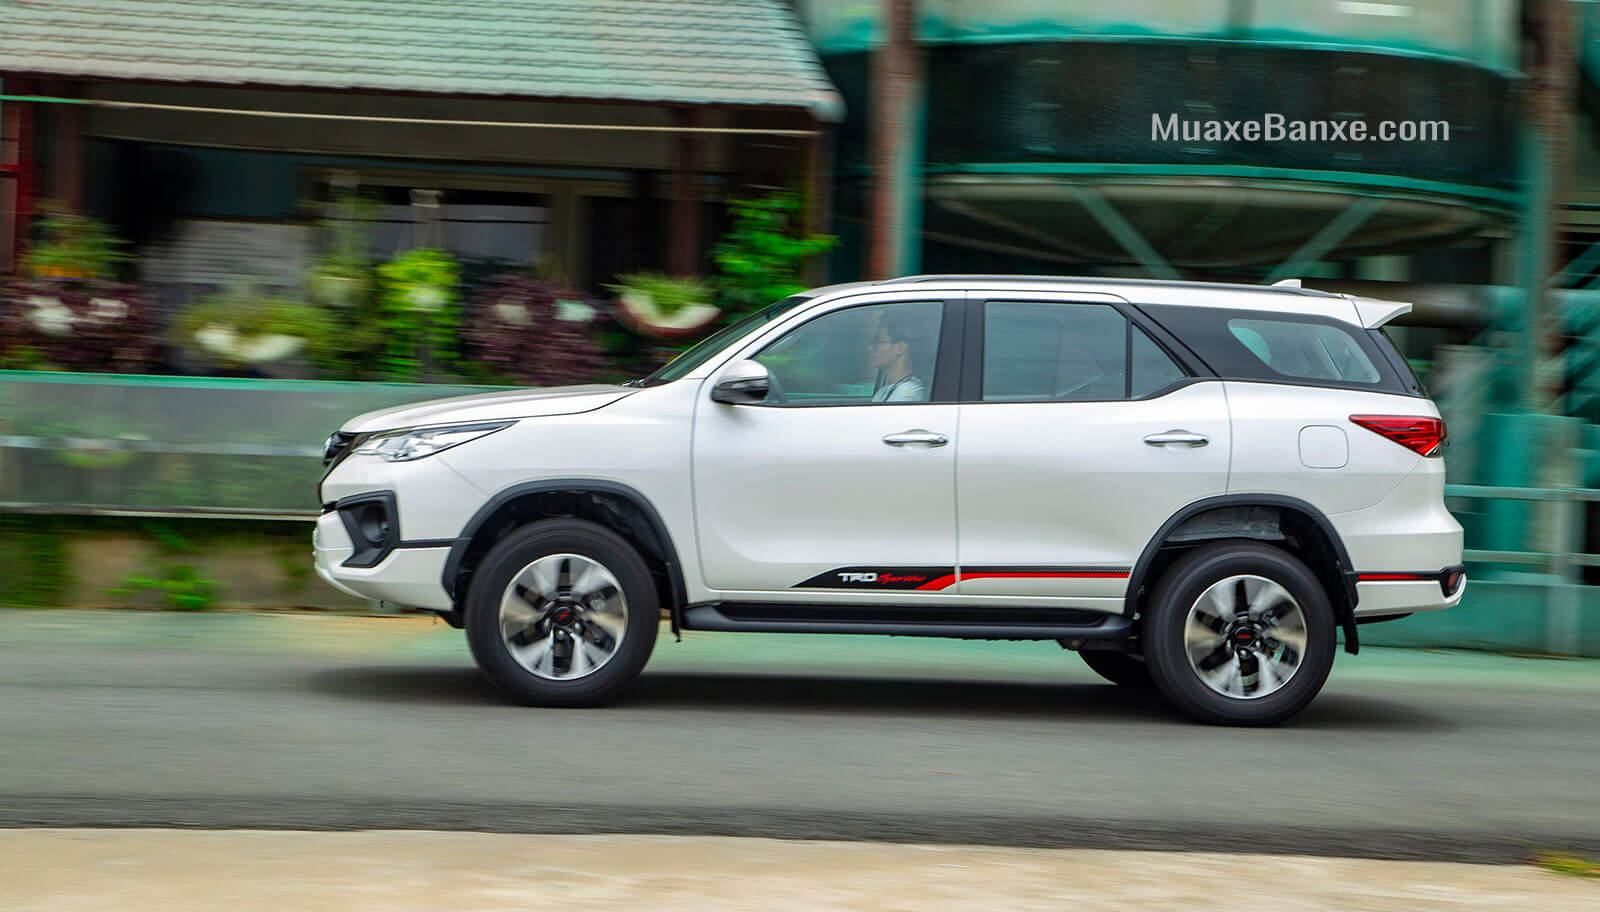 hong-xe-toyota-fortuner-trd-sportivo-2019-27l-42-may-xang-muaxegiatot-vn